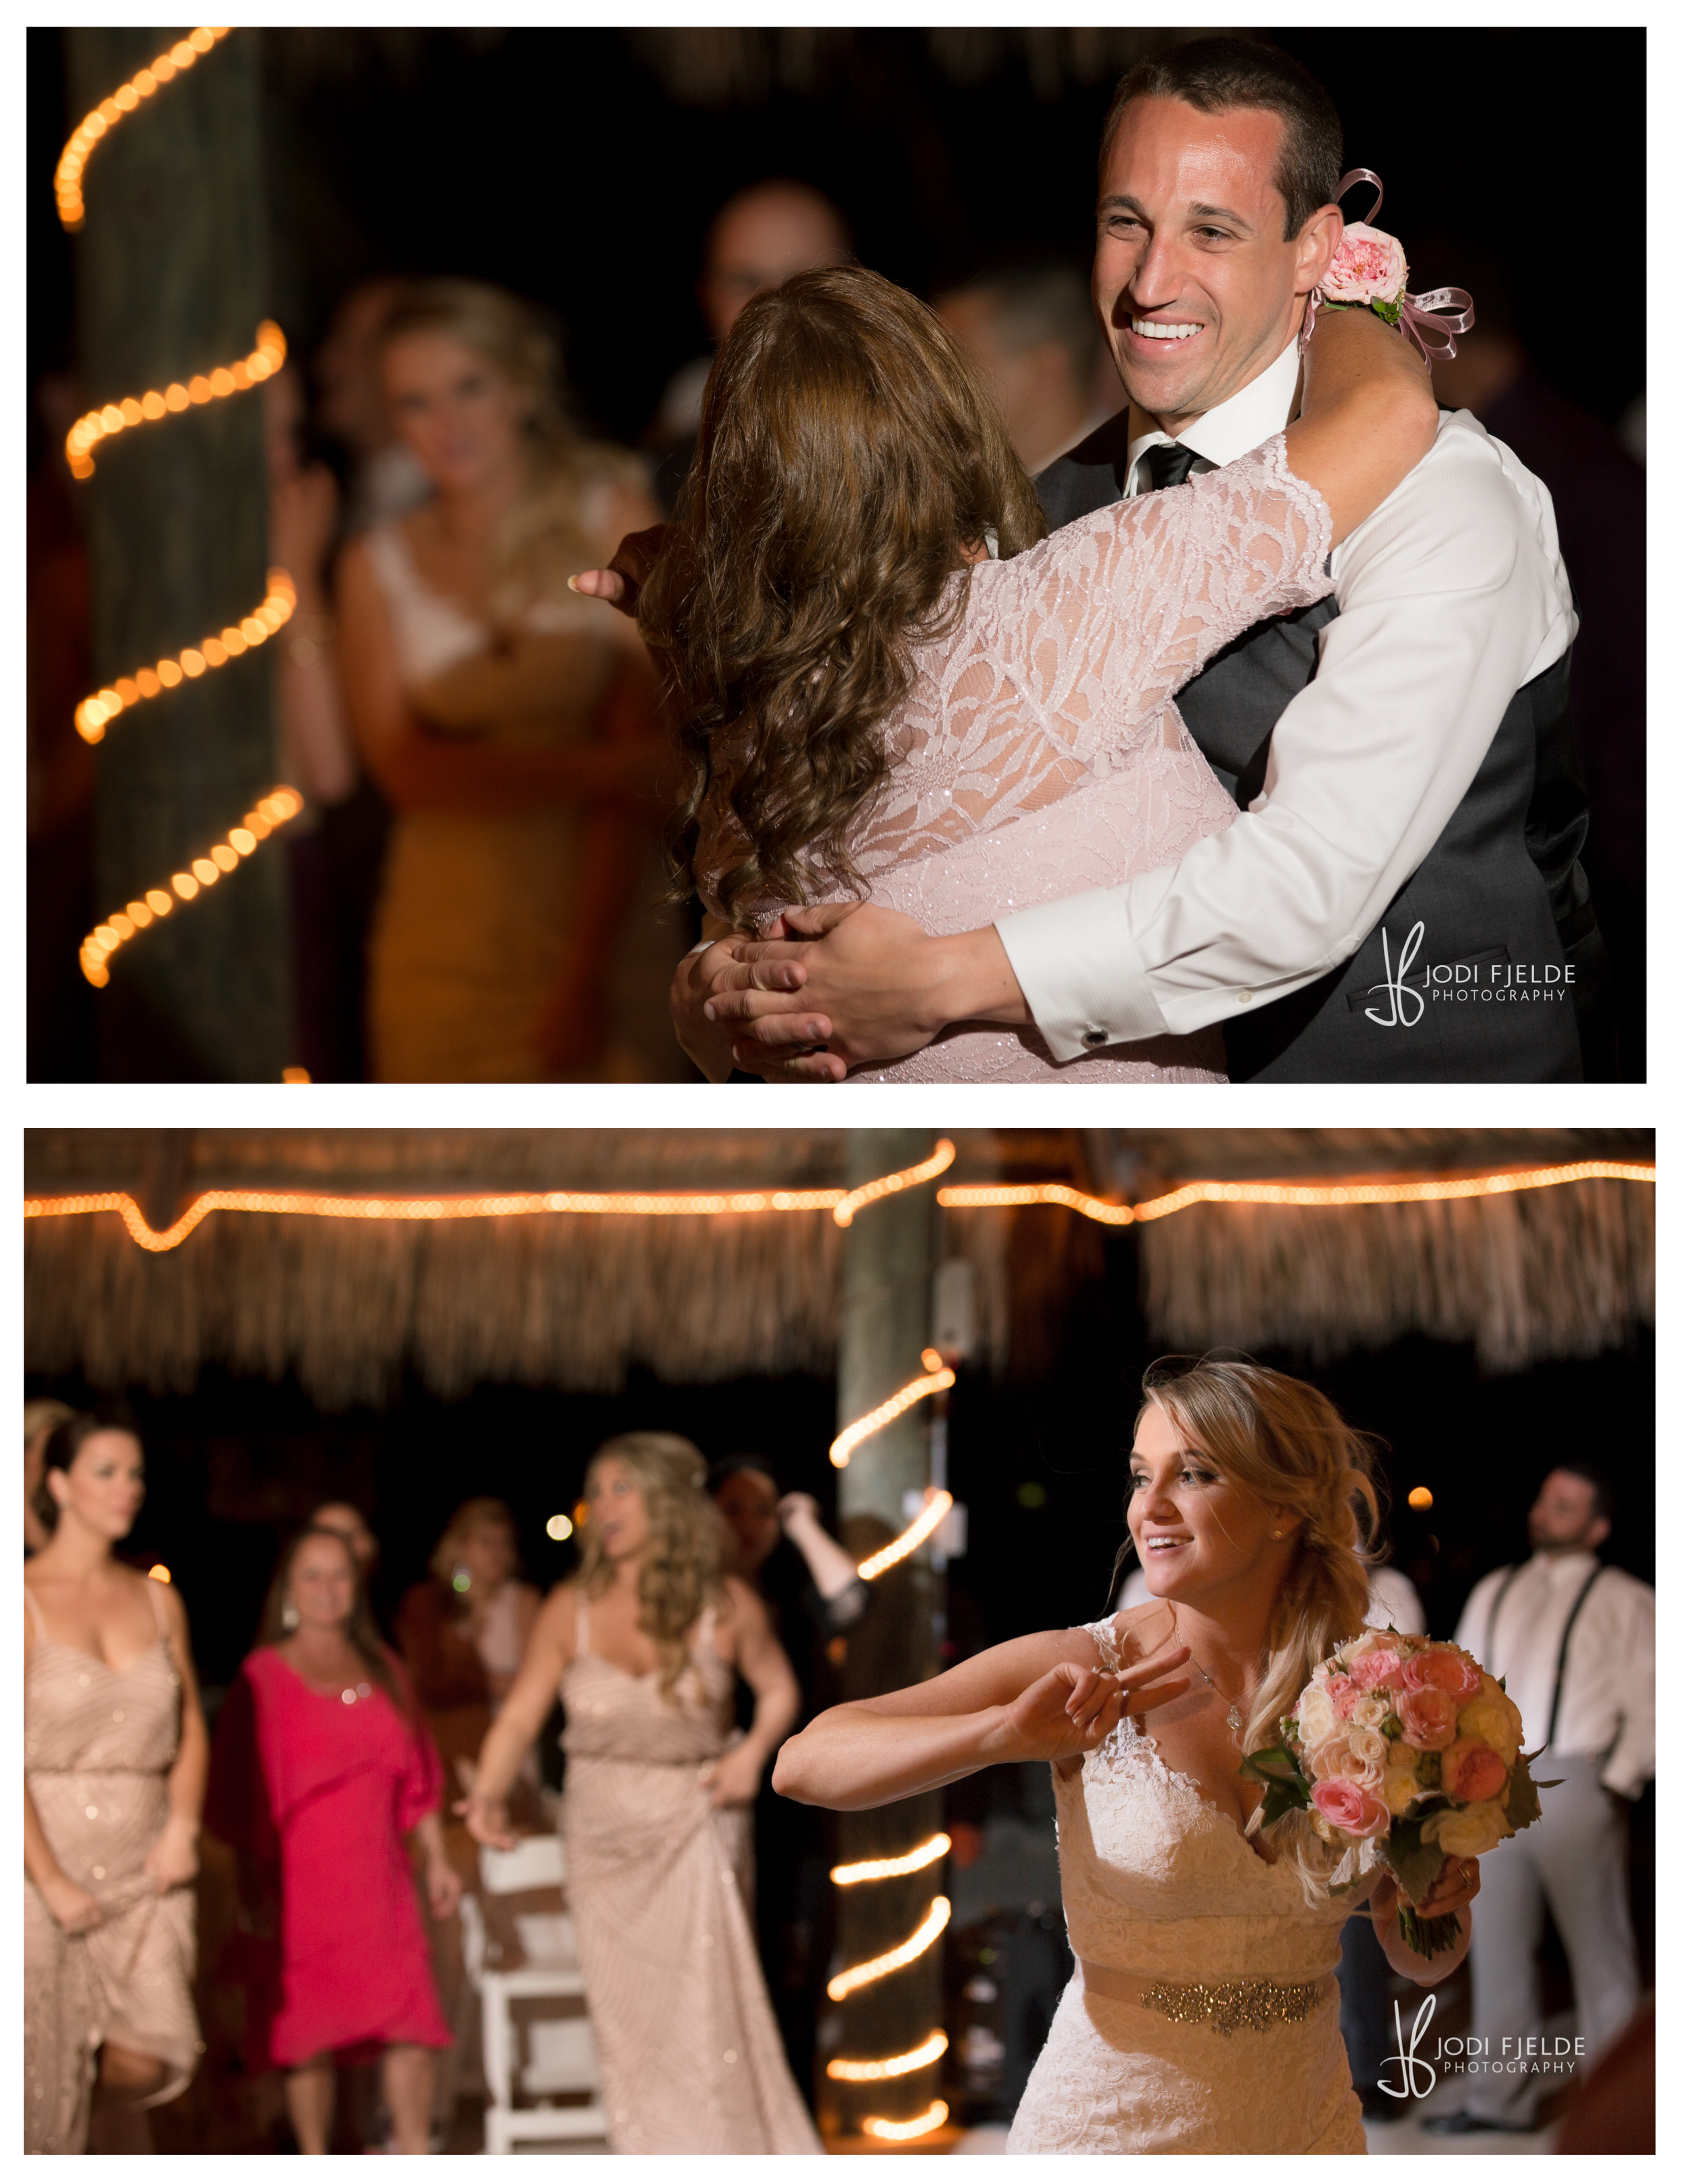 Cocconut_Cove_&_ Marina_ wedding_Kalie_and_Kurt  46.jpg